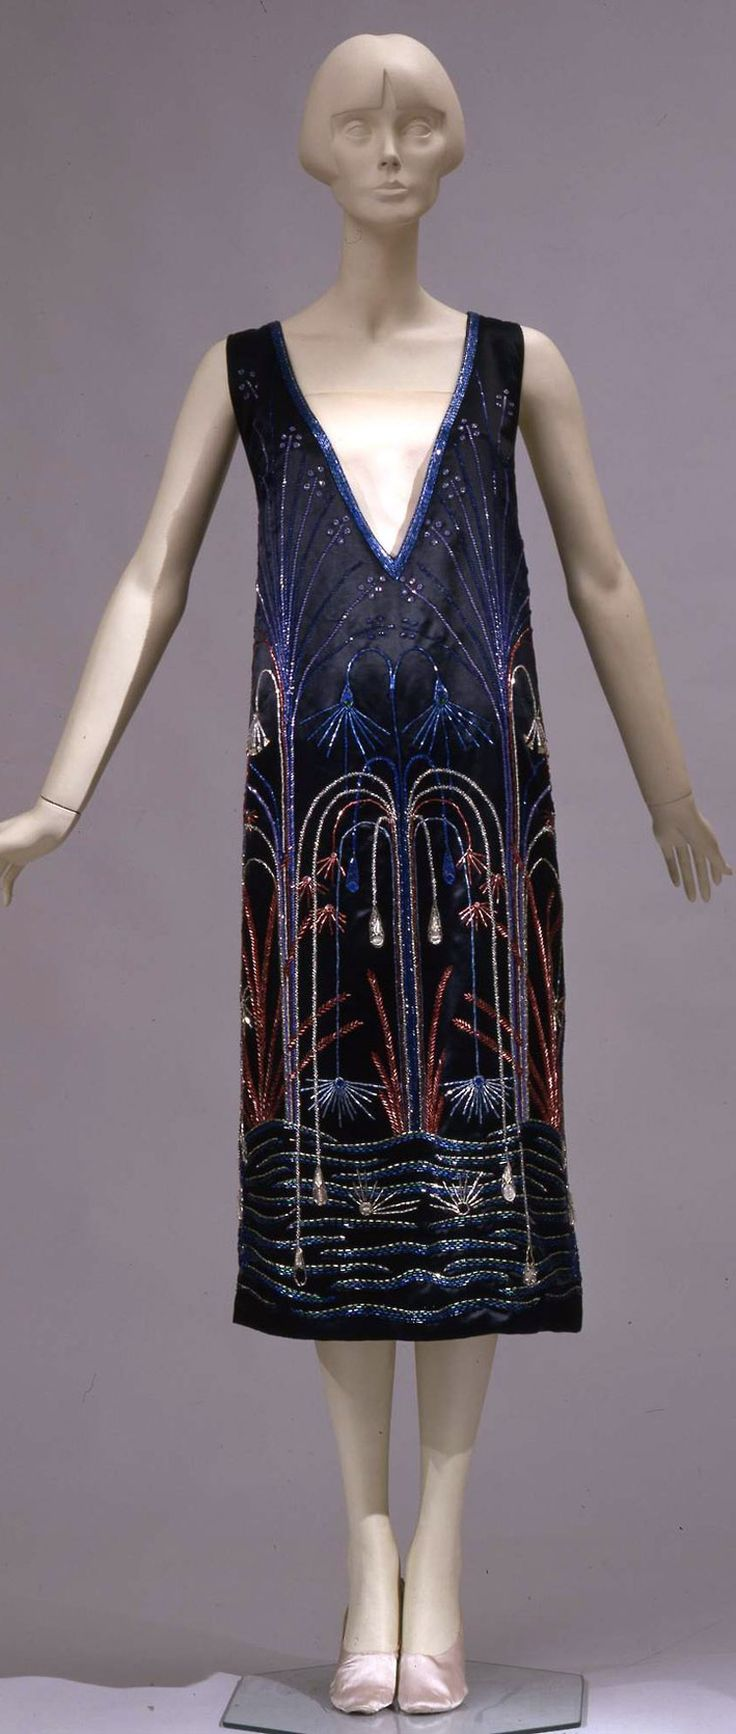 Evening dress, Sartoria Ventura, Rome (?), ca. 1925. Short sleeveless dress in black silk satin, embroidered with glass straws. Collection Galleria del Costume di Palazzo Pitti